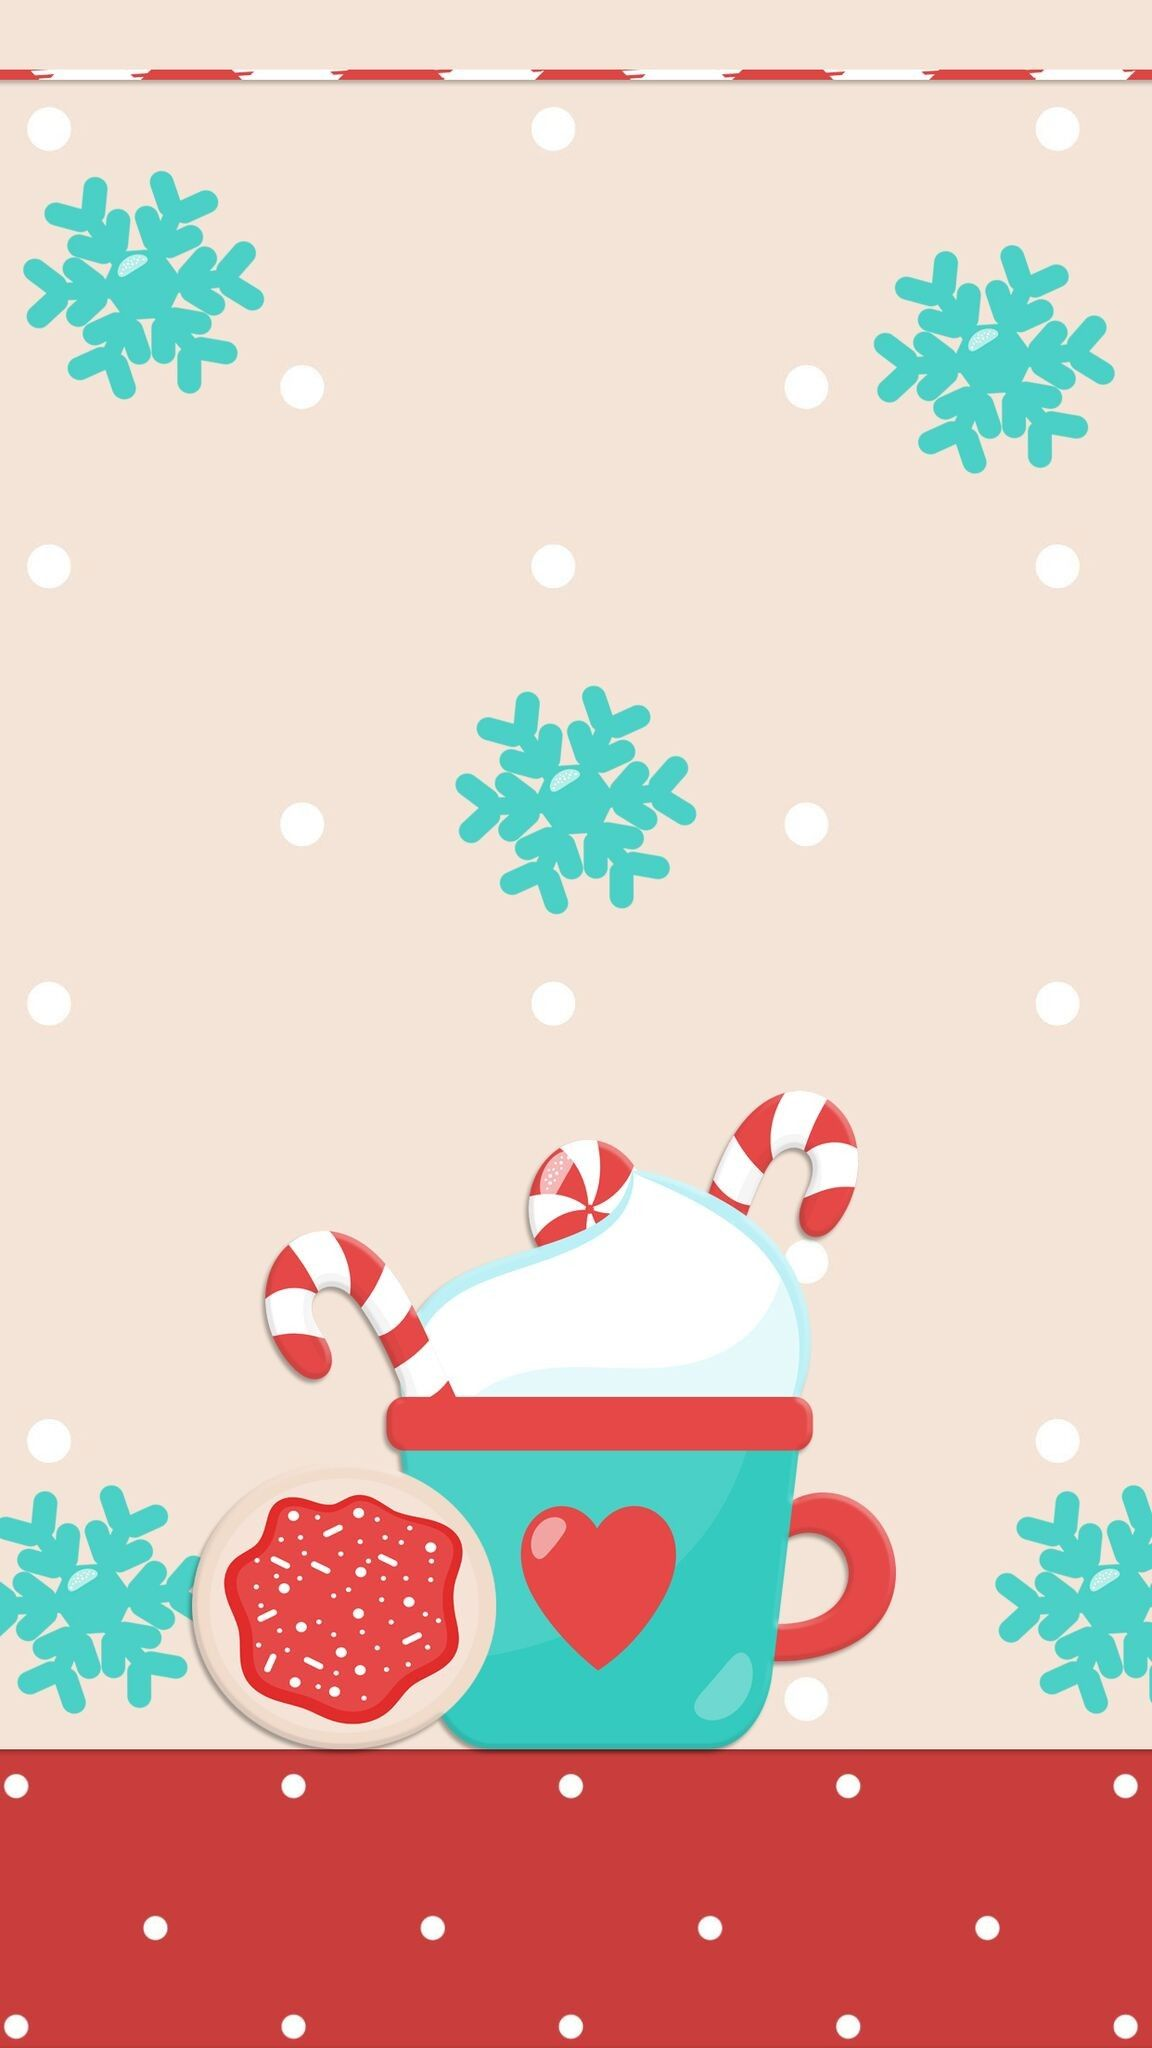 Pin By Amanda Atwood On Winter And Christmas Wallpapers Cute Christmas Wallpaper Xmas Wallpaper Wallpaper Iphone Christmas